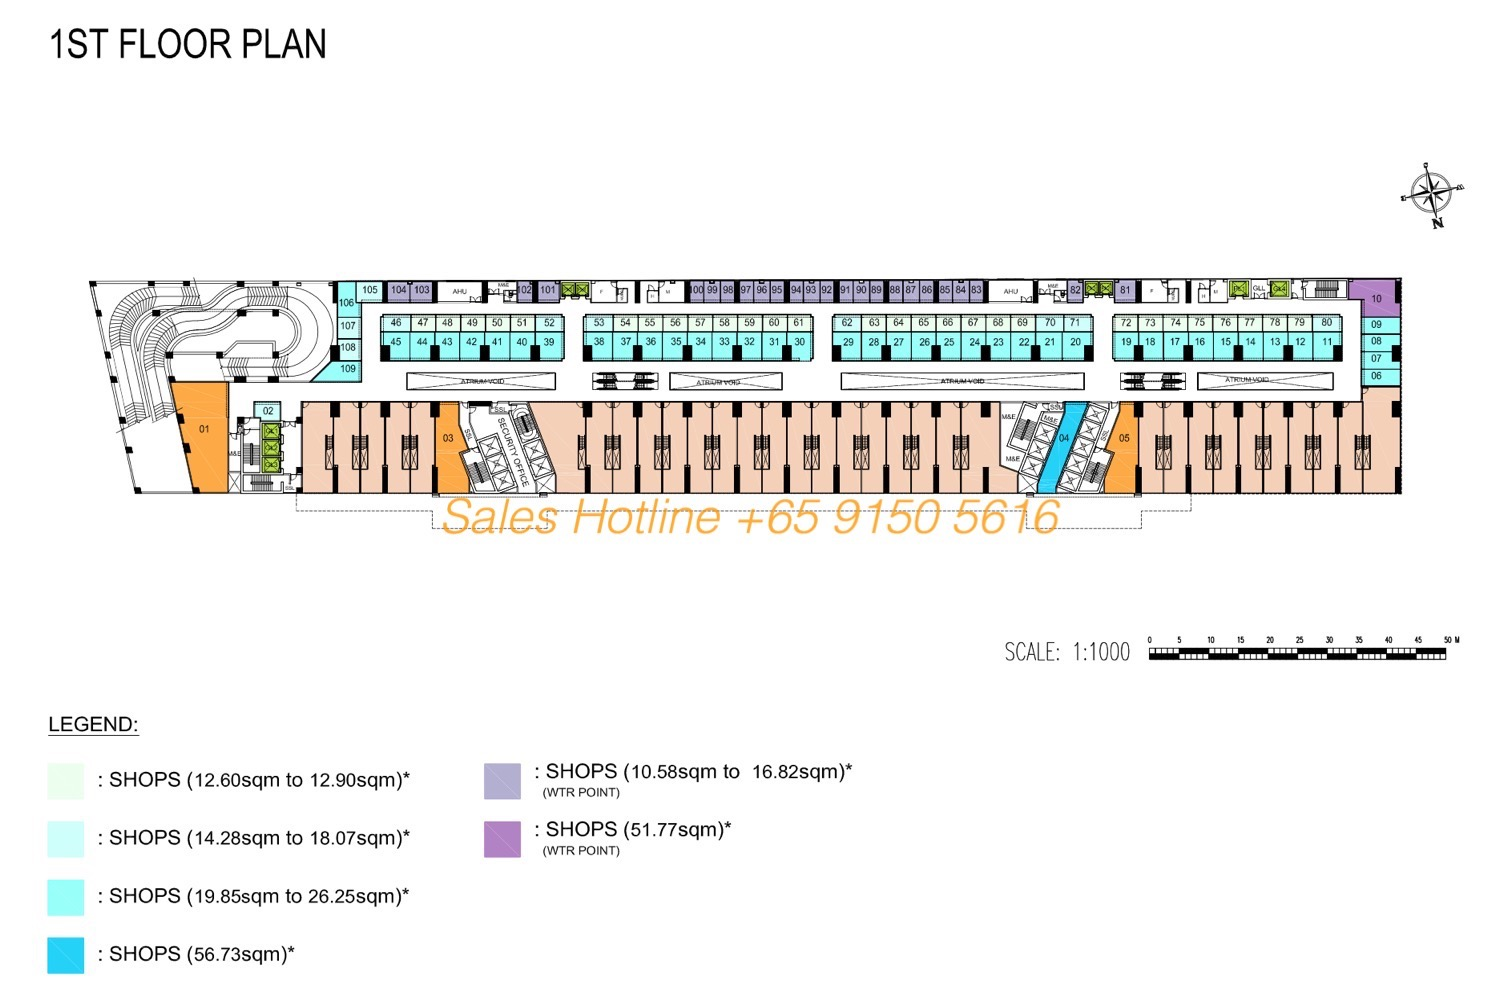 The Bridge Camobodia - Retail Site Plan 1st Floor